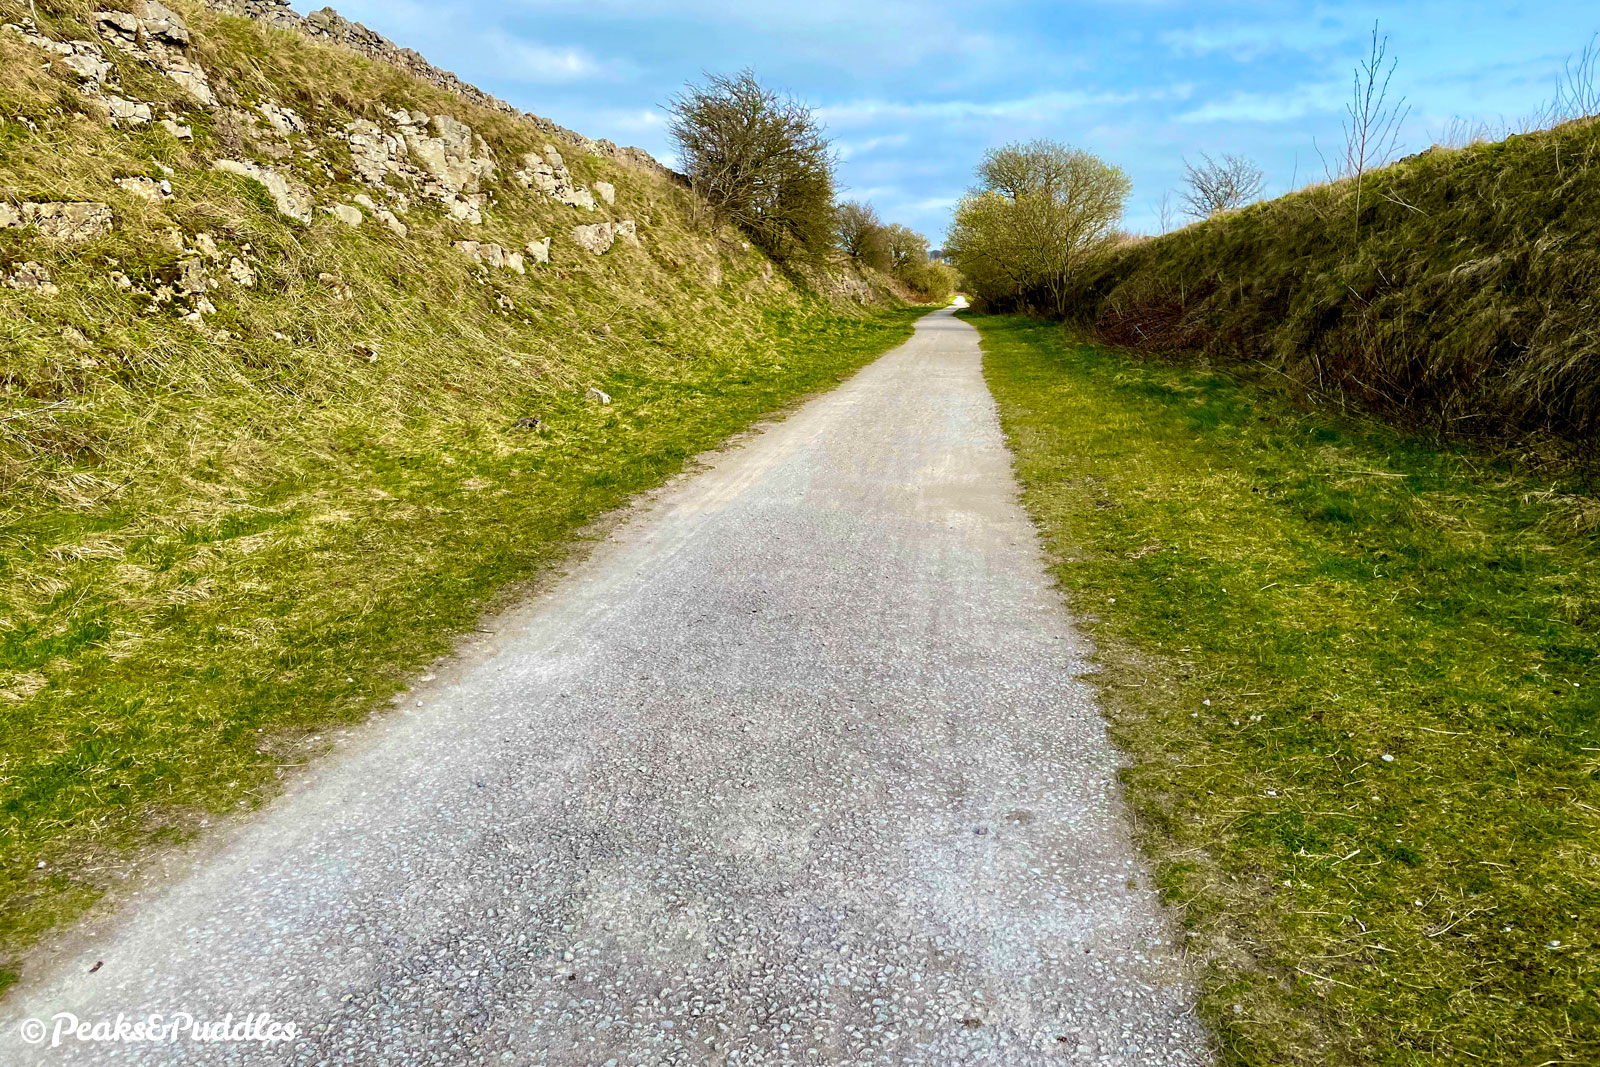 The much quieter northerly stretch of the High Peak Trail seems to be lacking a smoother top surface like the rest.